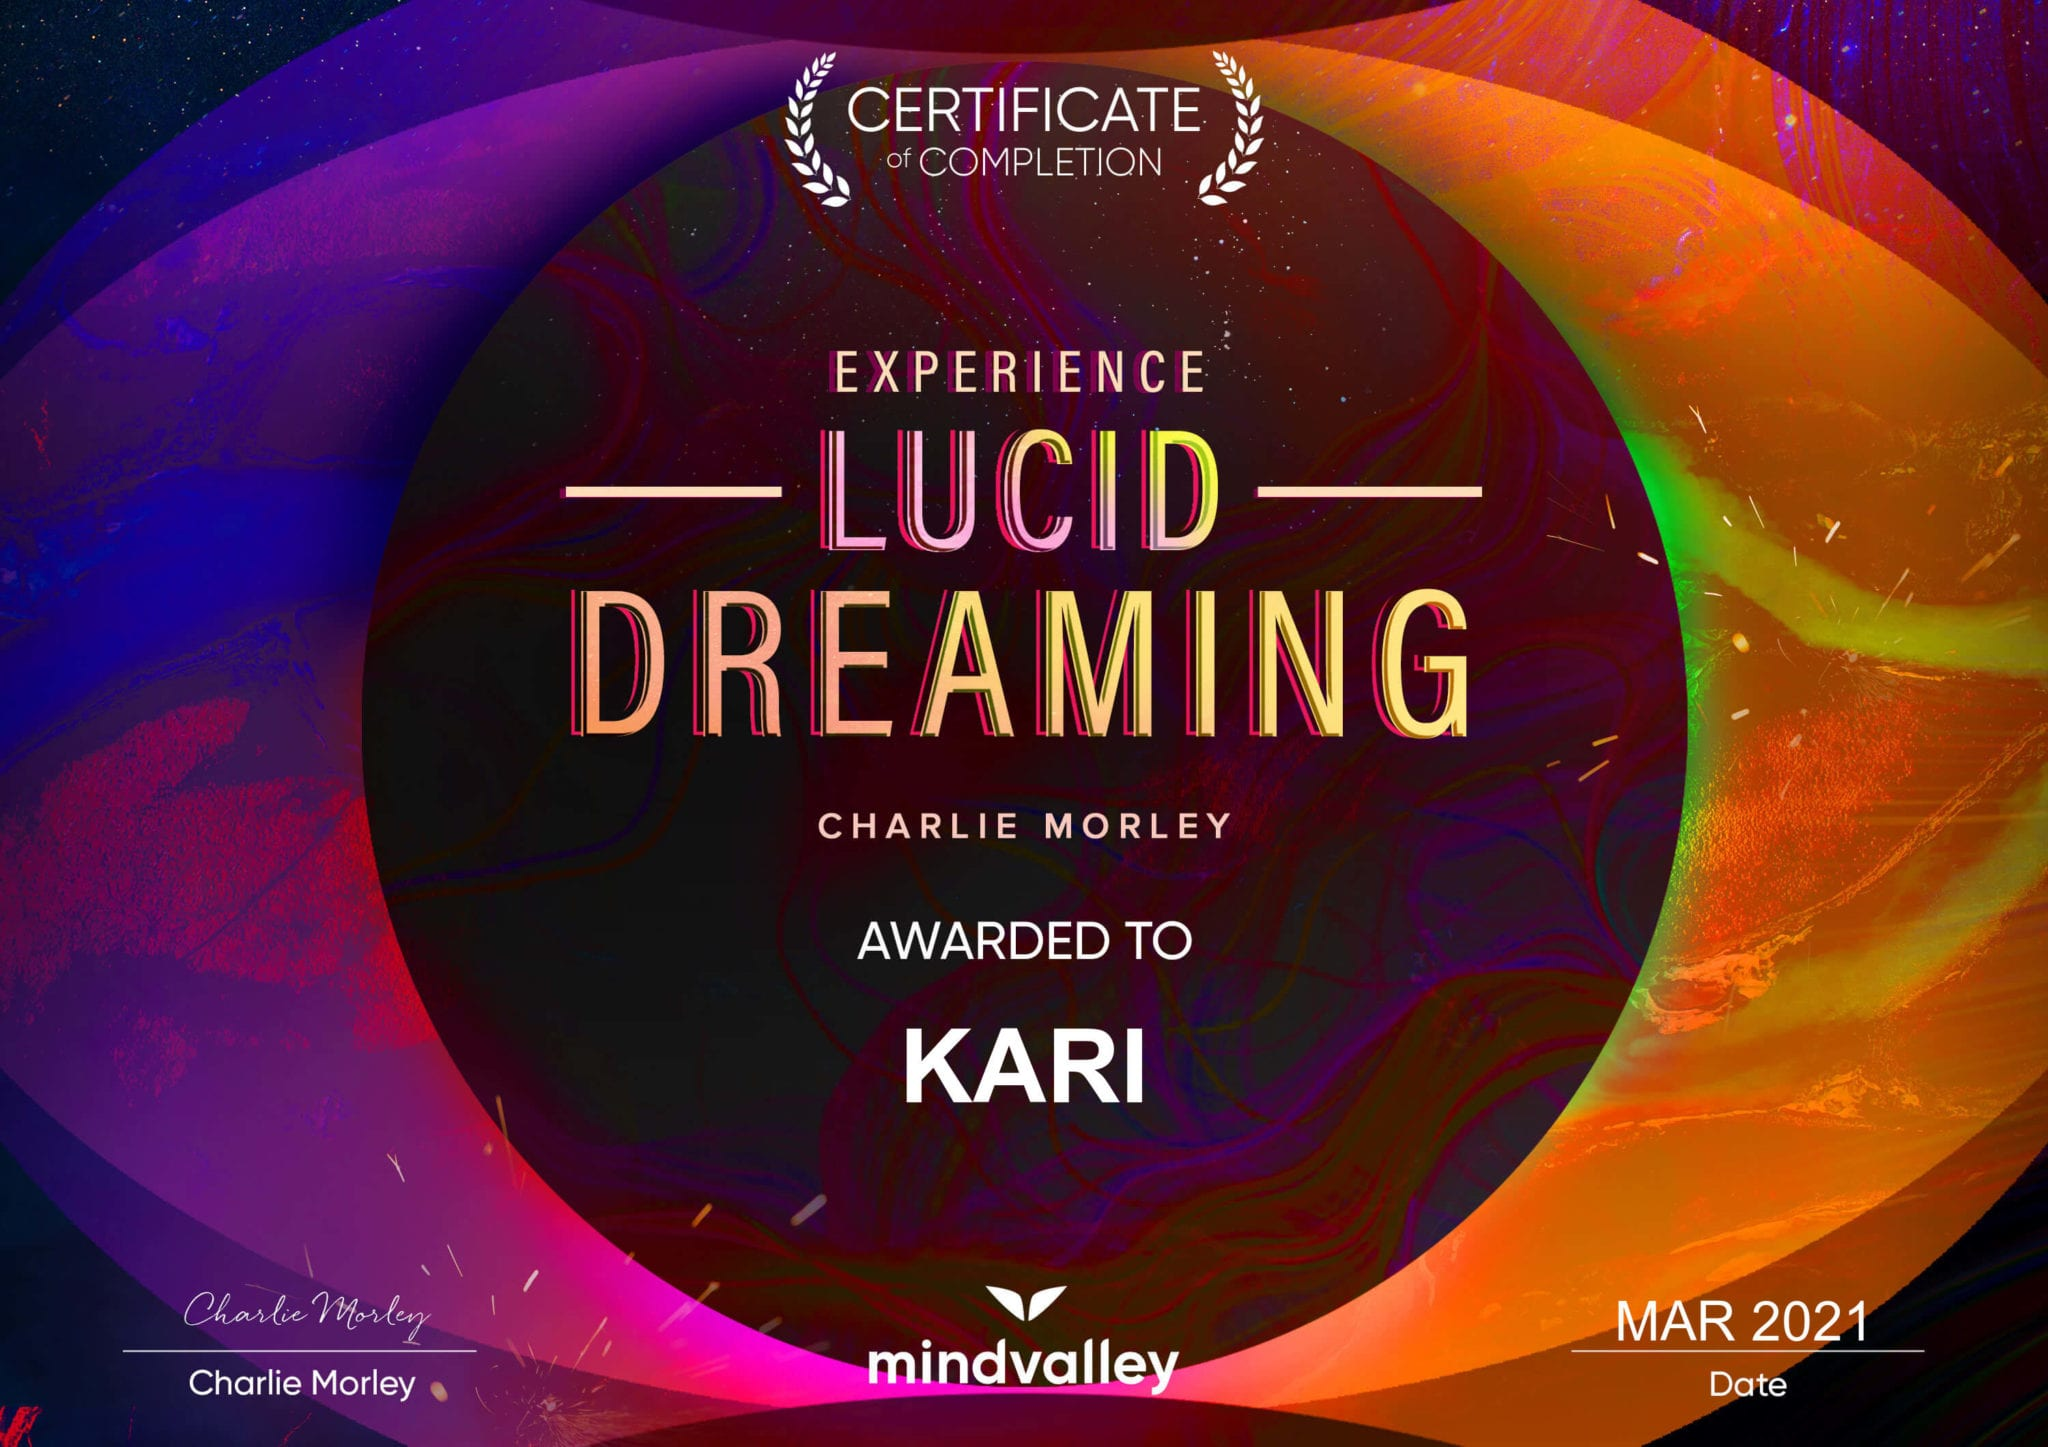 My Review Of The Experience Lucid Dreams Quest By Charlie Morley